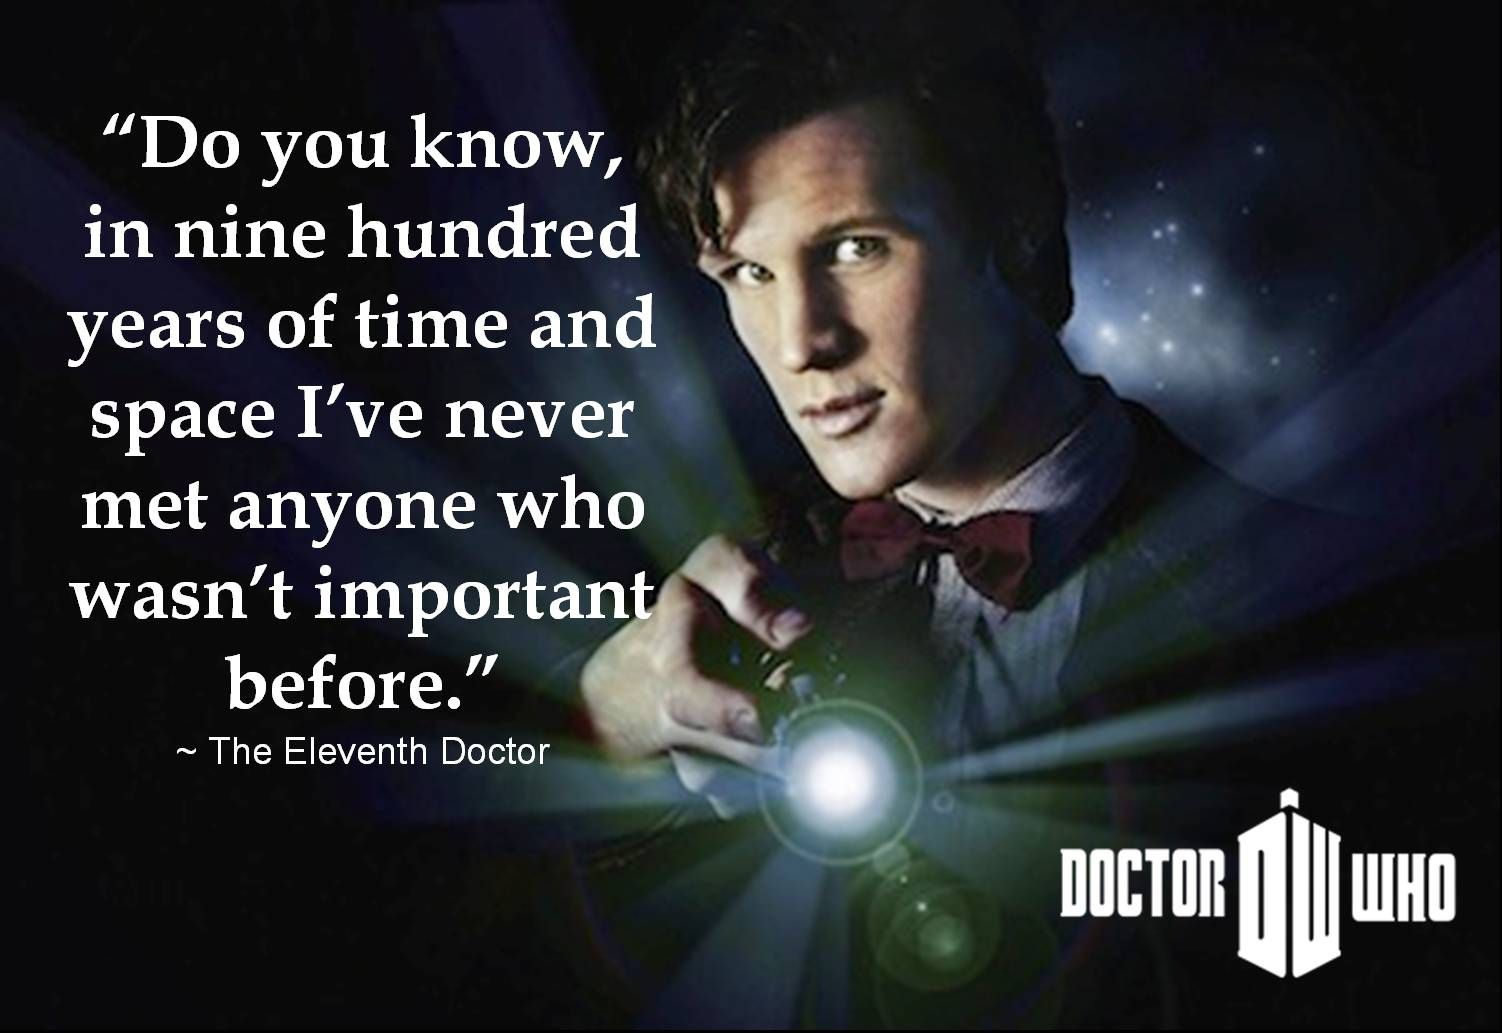 From Doctor Who - A Christmas Carol | Original doctor who, Doctor who quotes